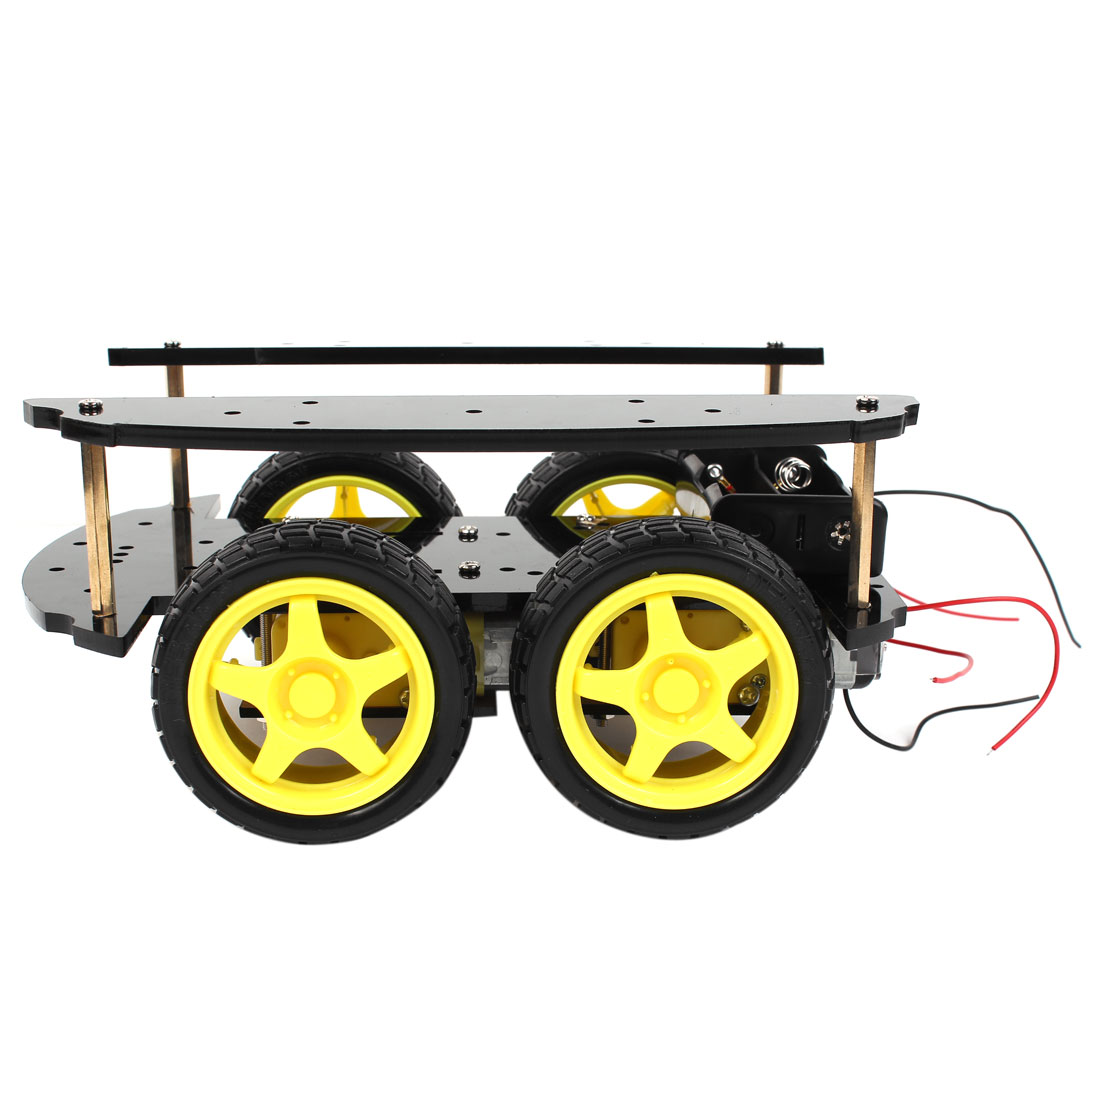 DIY Assembly 2-layer IR Remote Control 4WD Intelligent Car Chassis